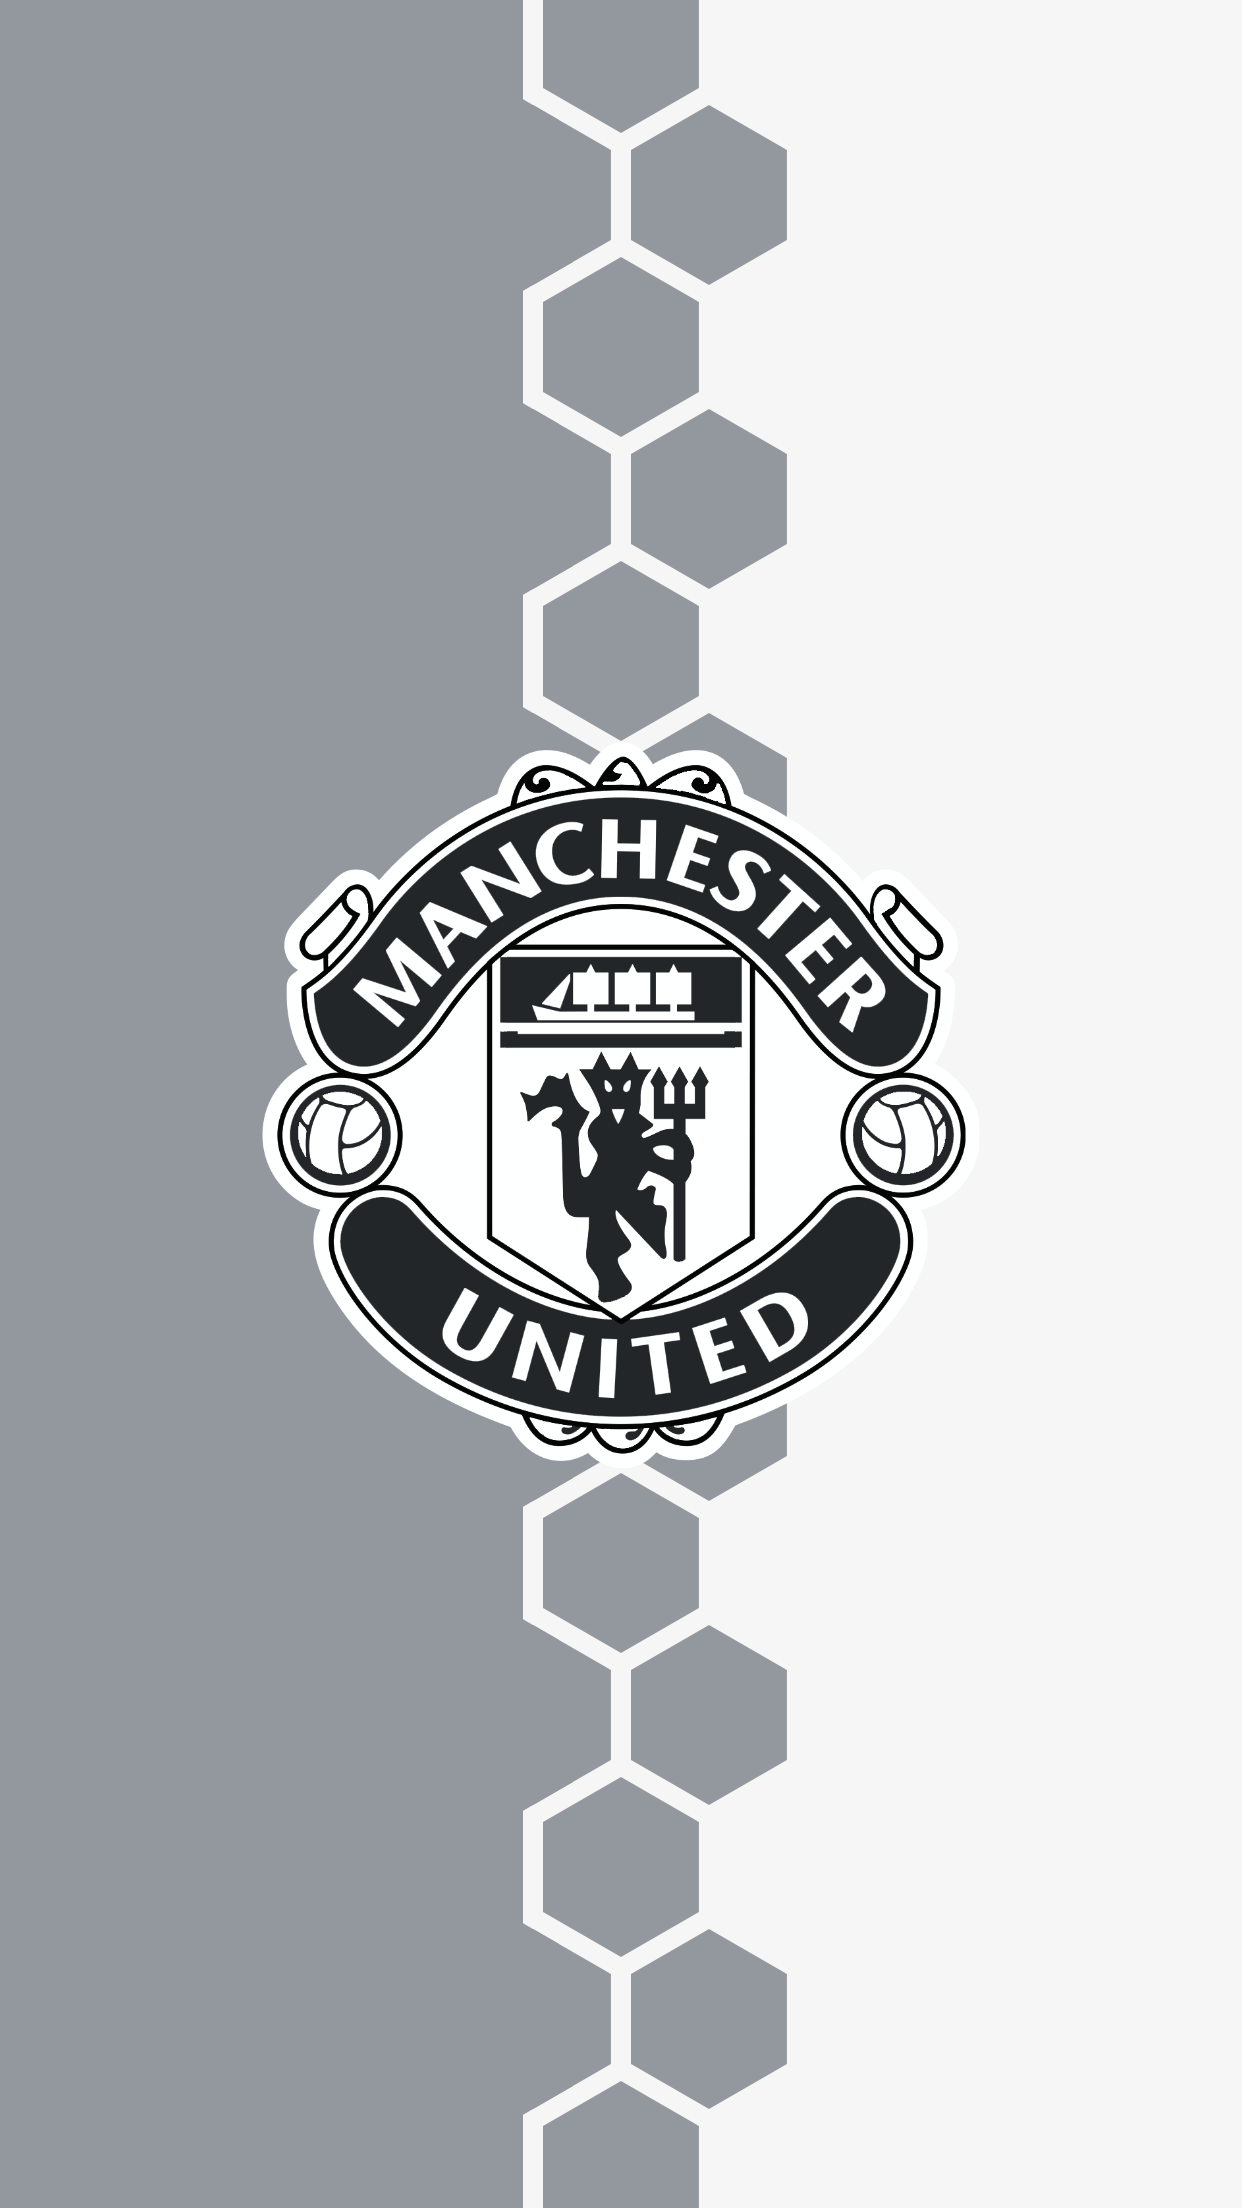 Manchester united iphone wallpaper tumblr - Football Pictures Man United Mobile Wallpaper Premier League Ronaldo Manchester United Basil Fifa Tokyo